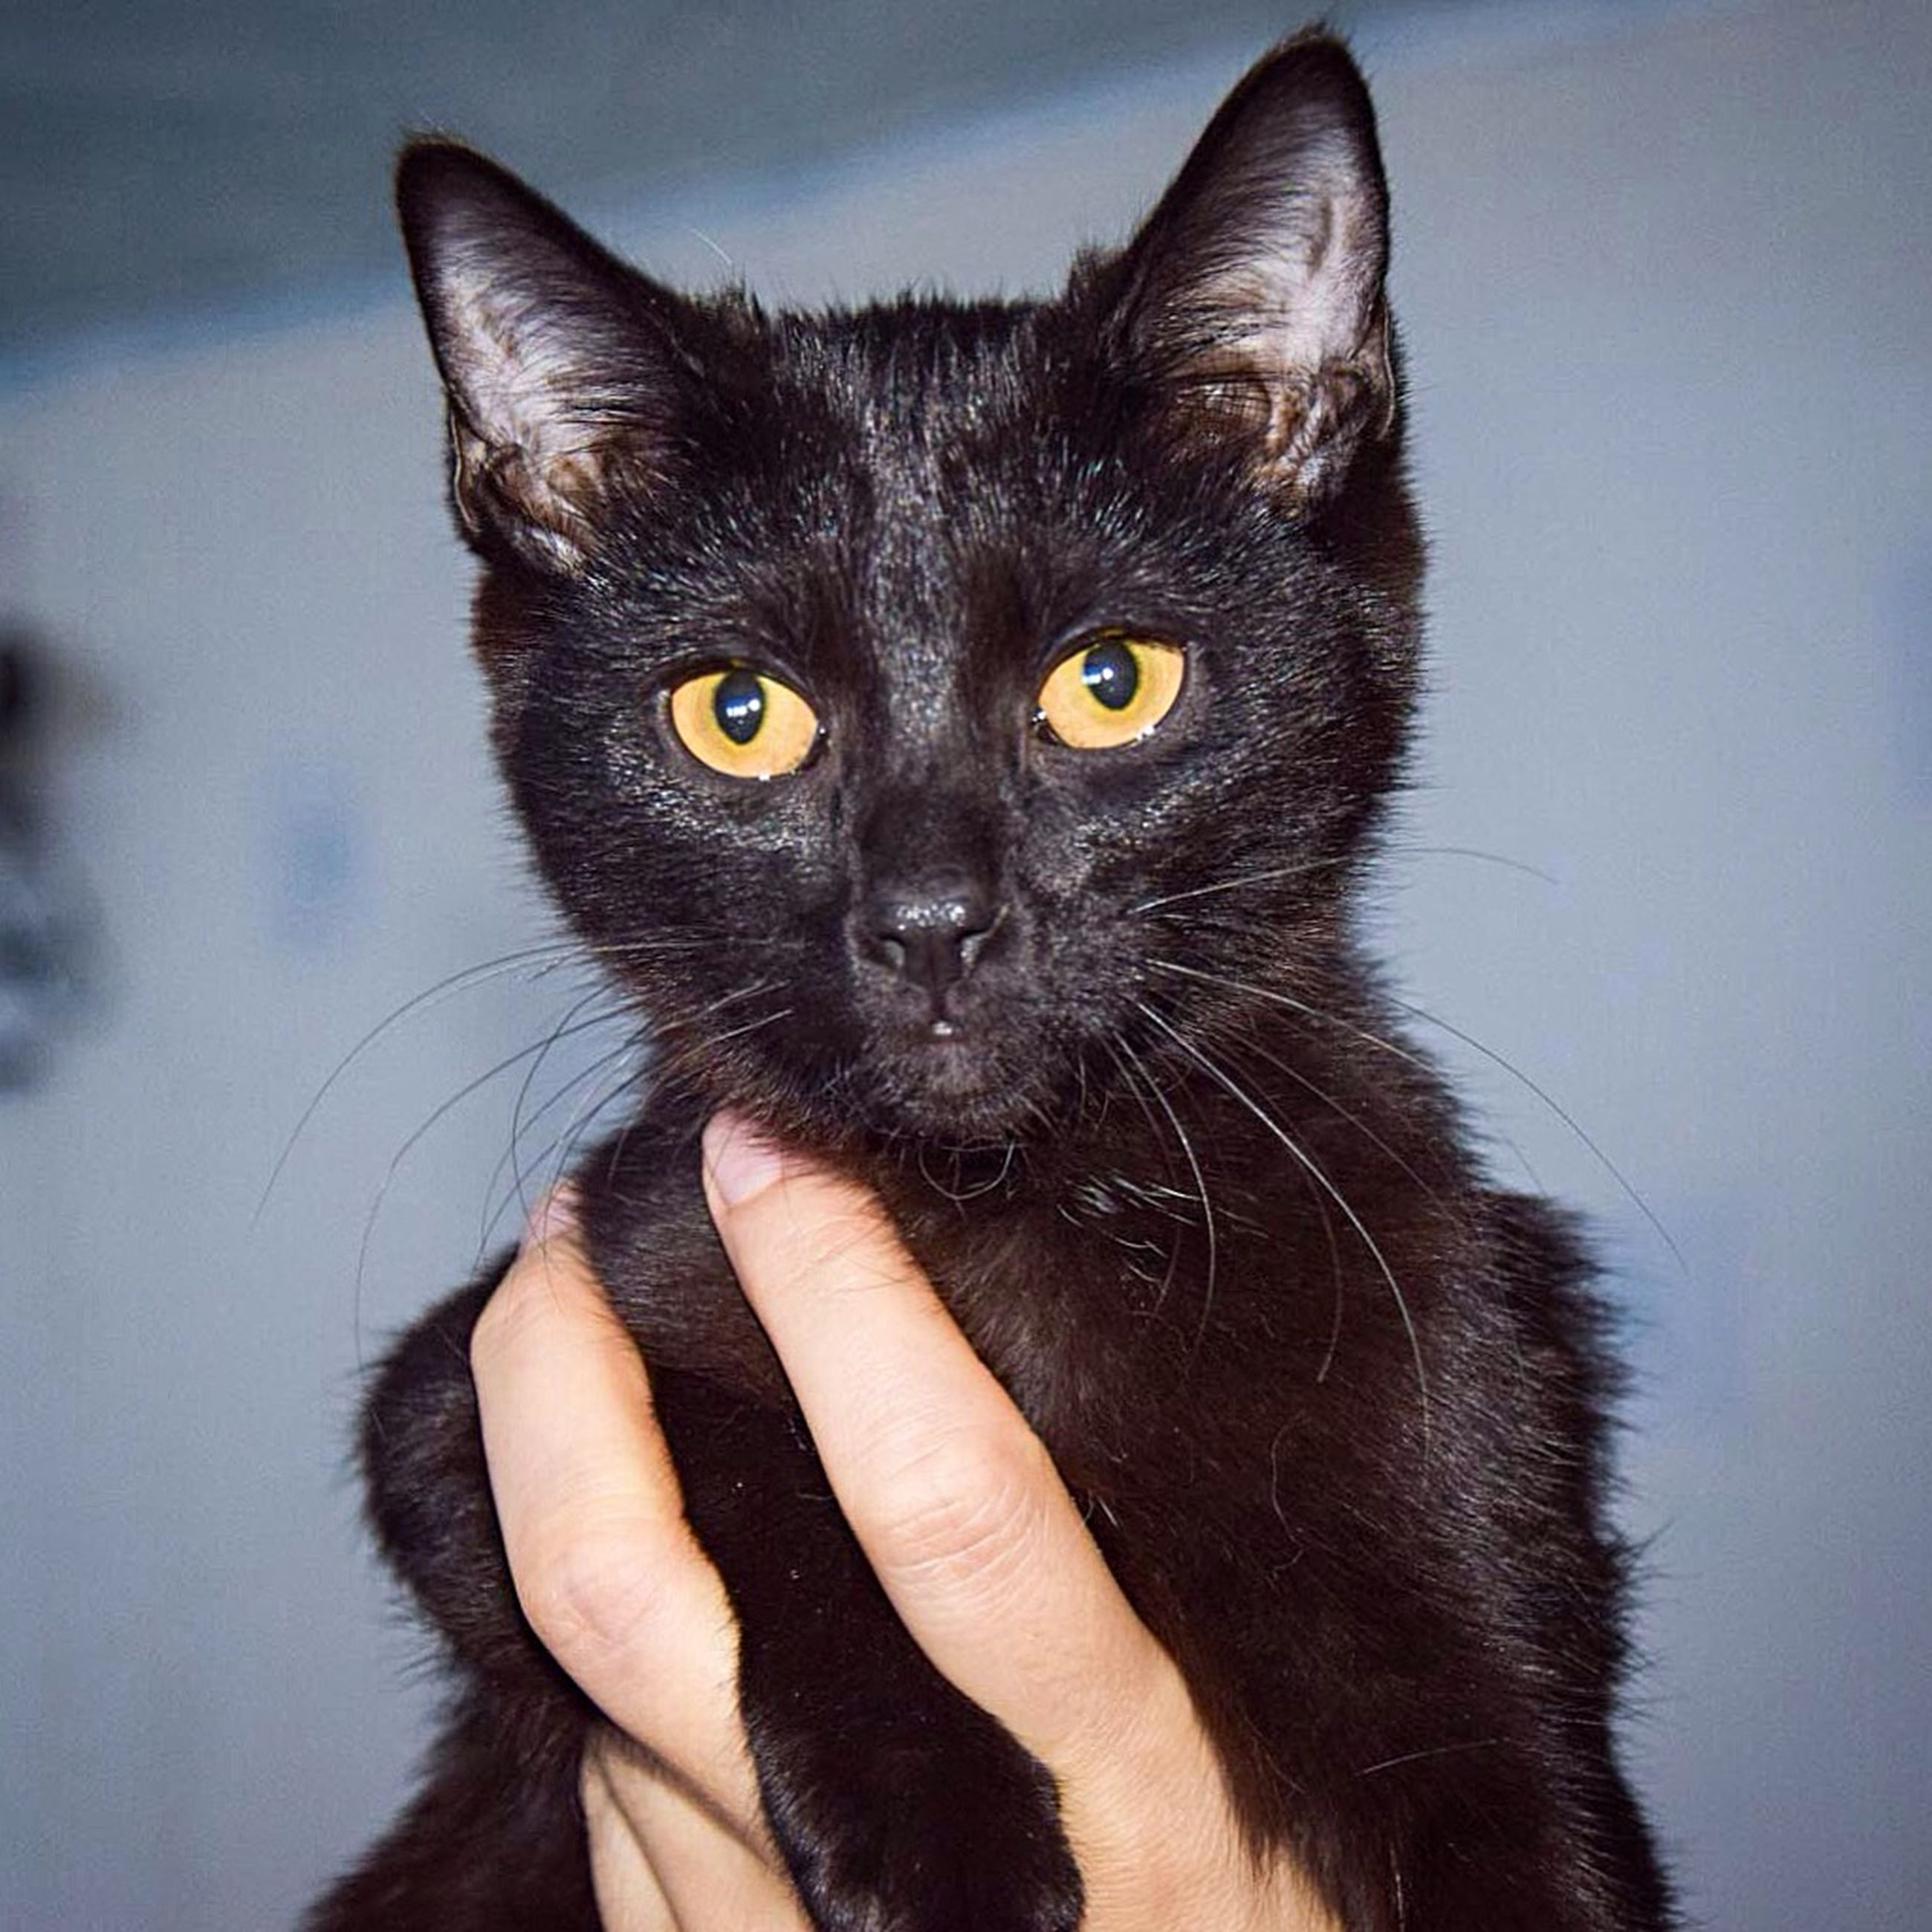 one animal, animal themes, pets, domestic animals, domestic cat, mammal, person, cat, part of, looking at camera, personal perspective, portrait, whisker, feline, close-up, unrecognizable person, black color